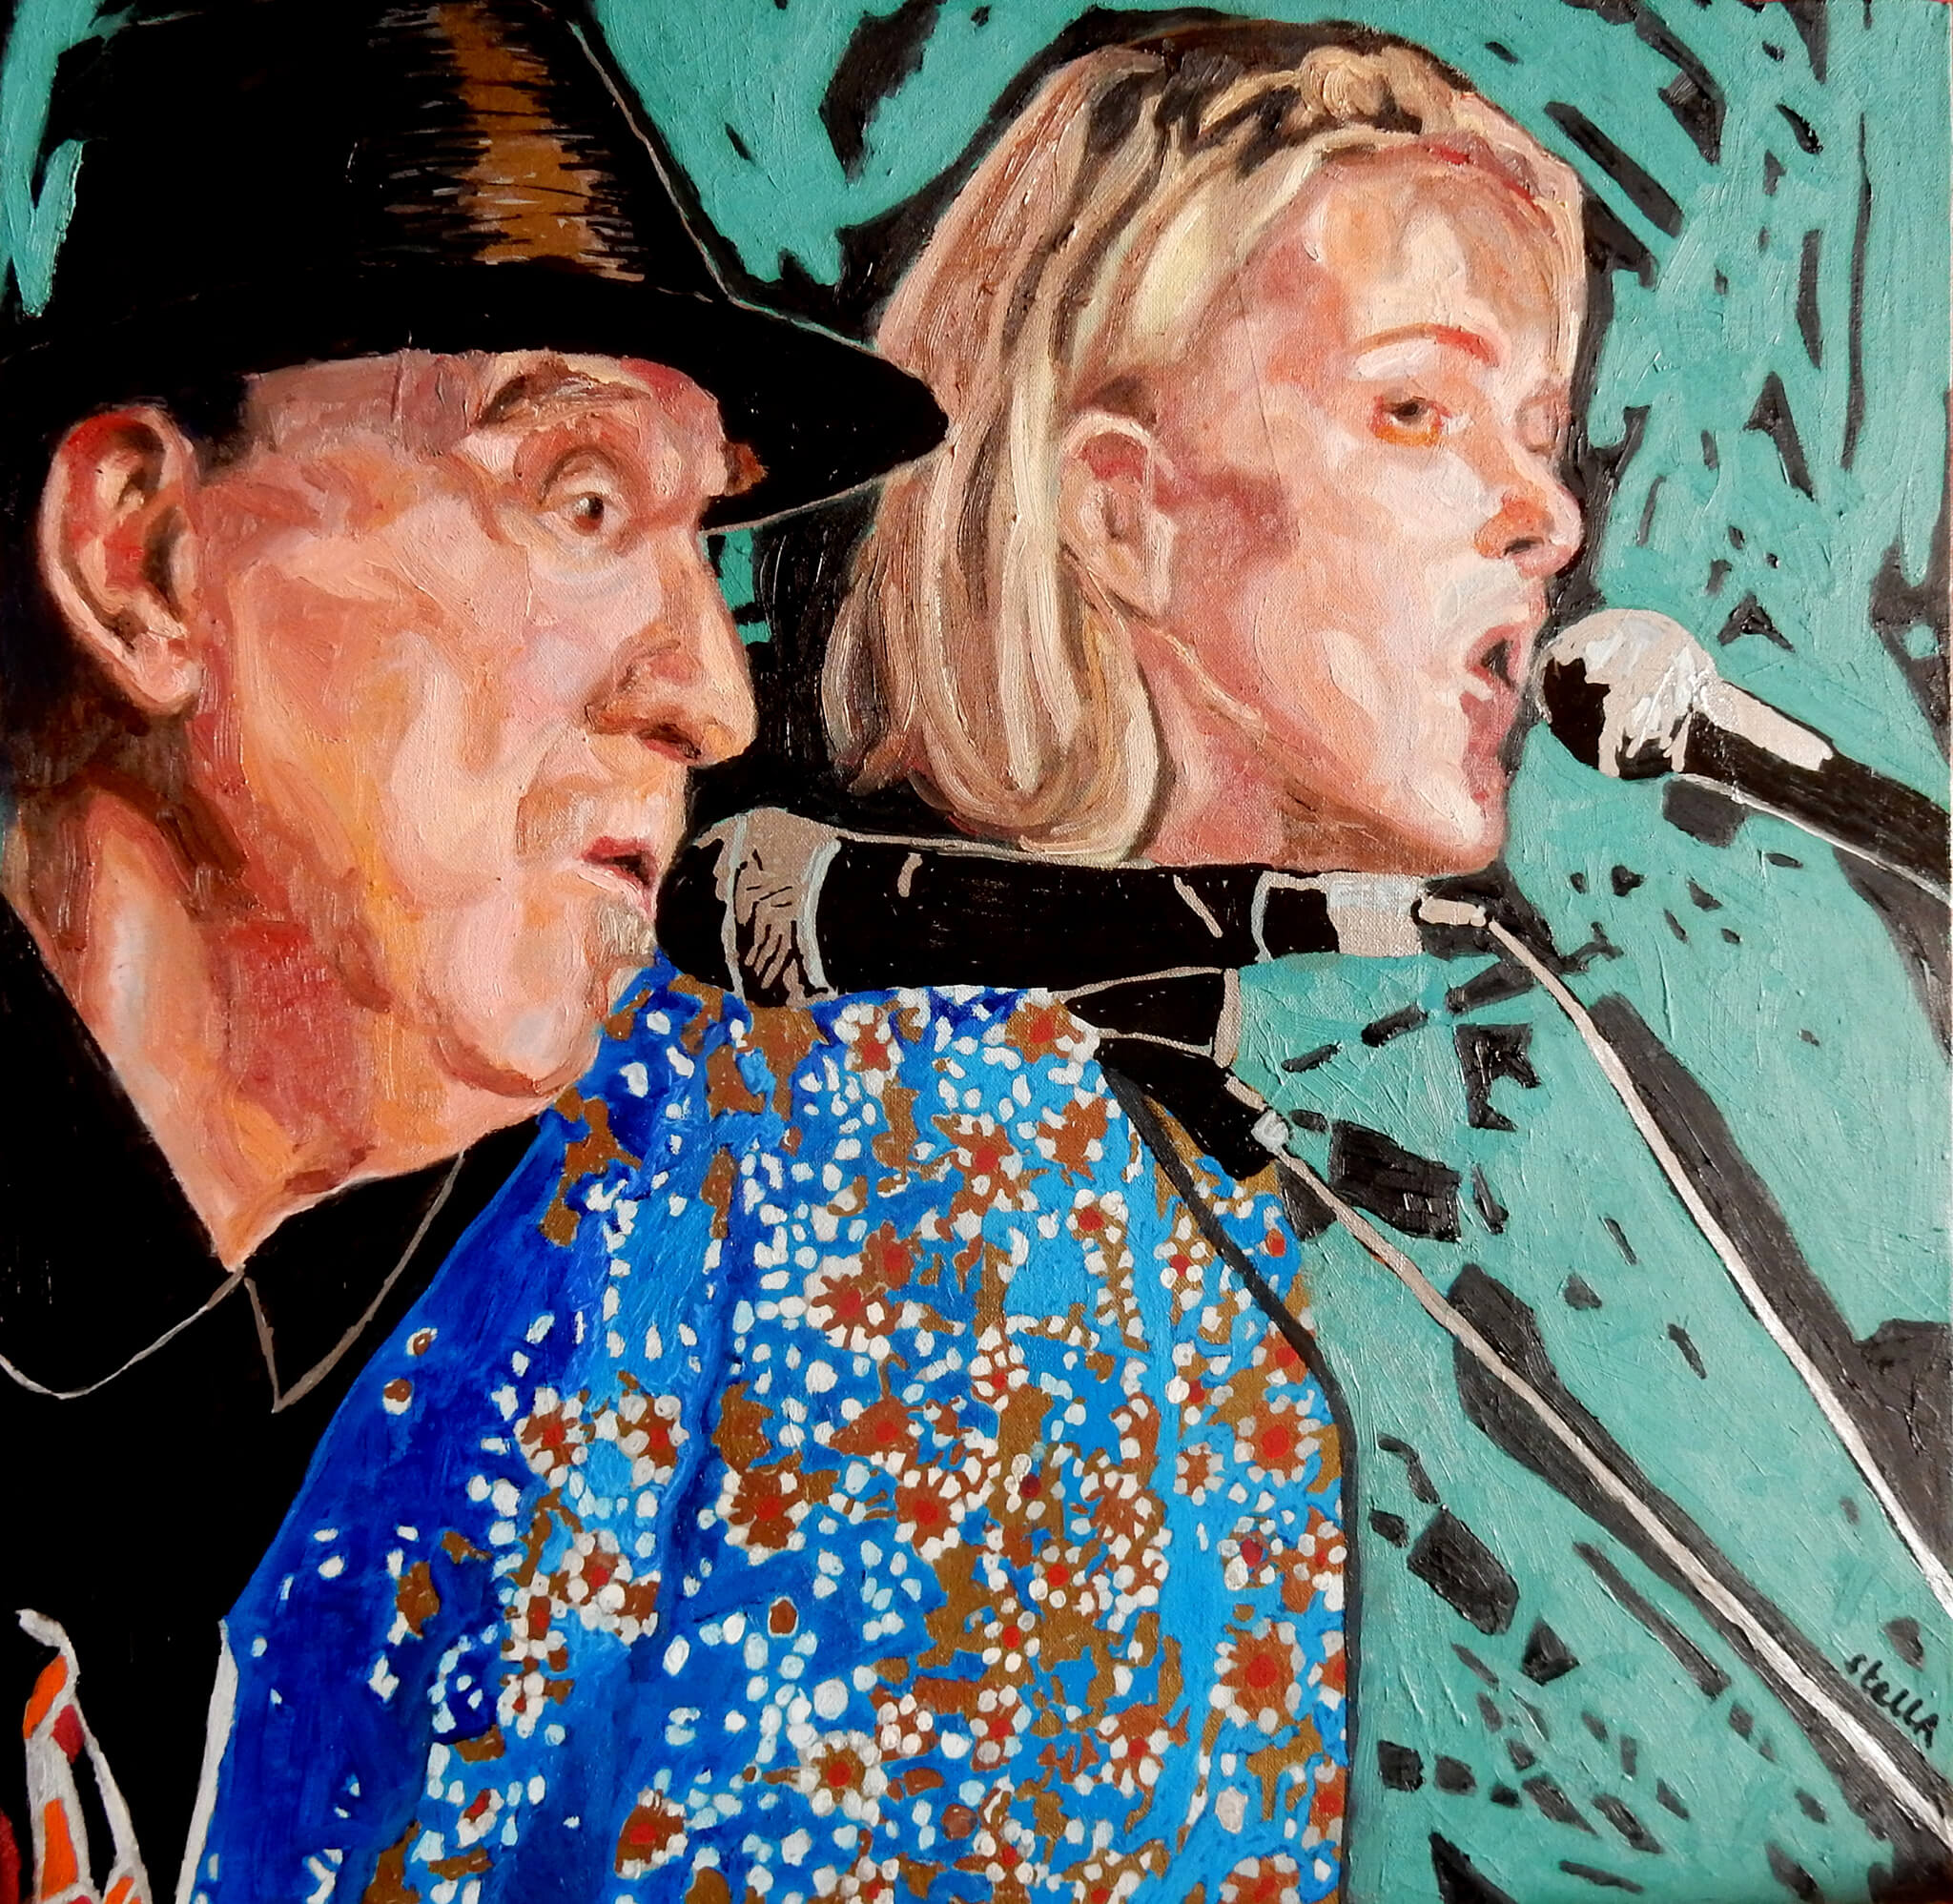 Hank Wangford and Spanner at the Half Moon Putney oil on canvas artwork by Stella Tooth.